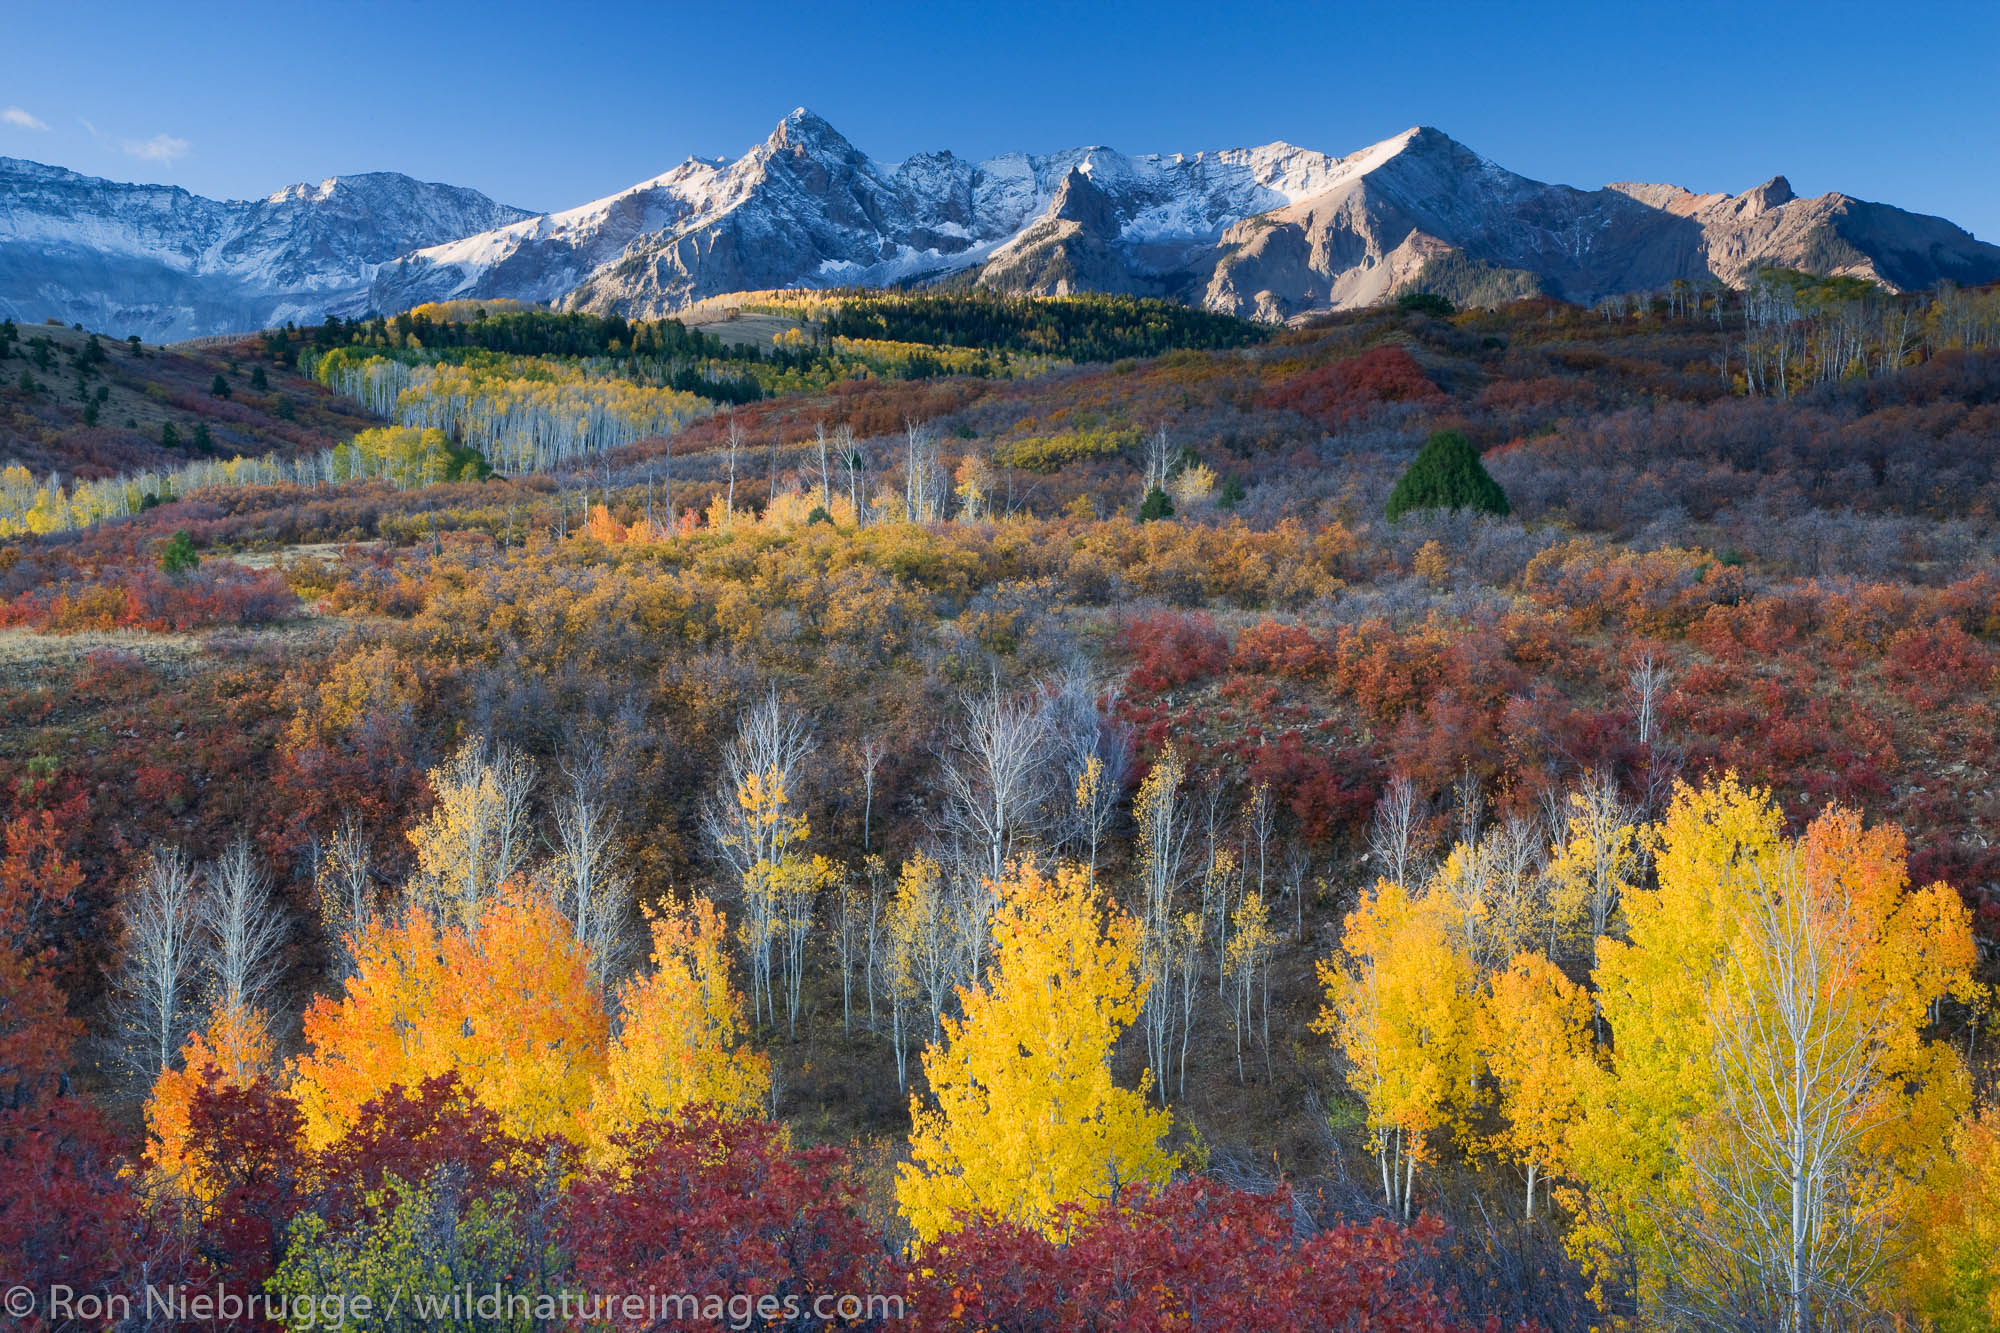 Autumn colors and the Sneffels Range, San Juan Mountains, Dallas Divide,  Colorado.